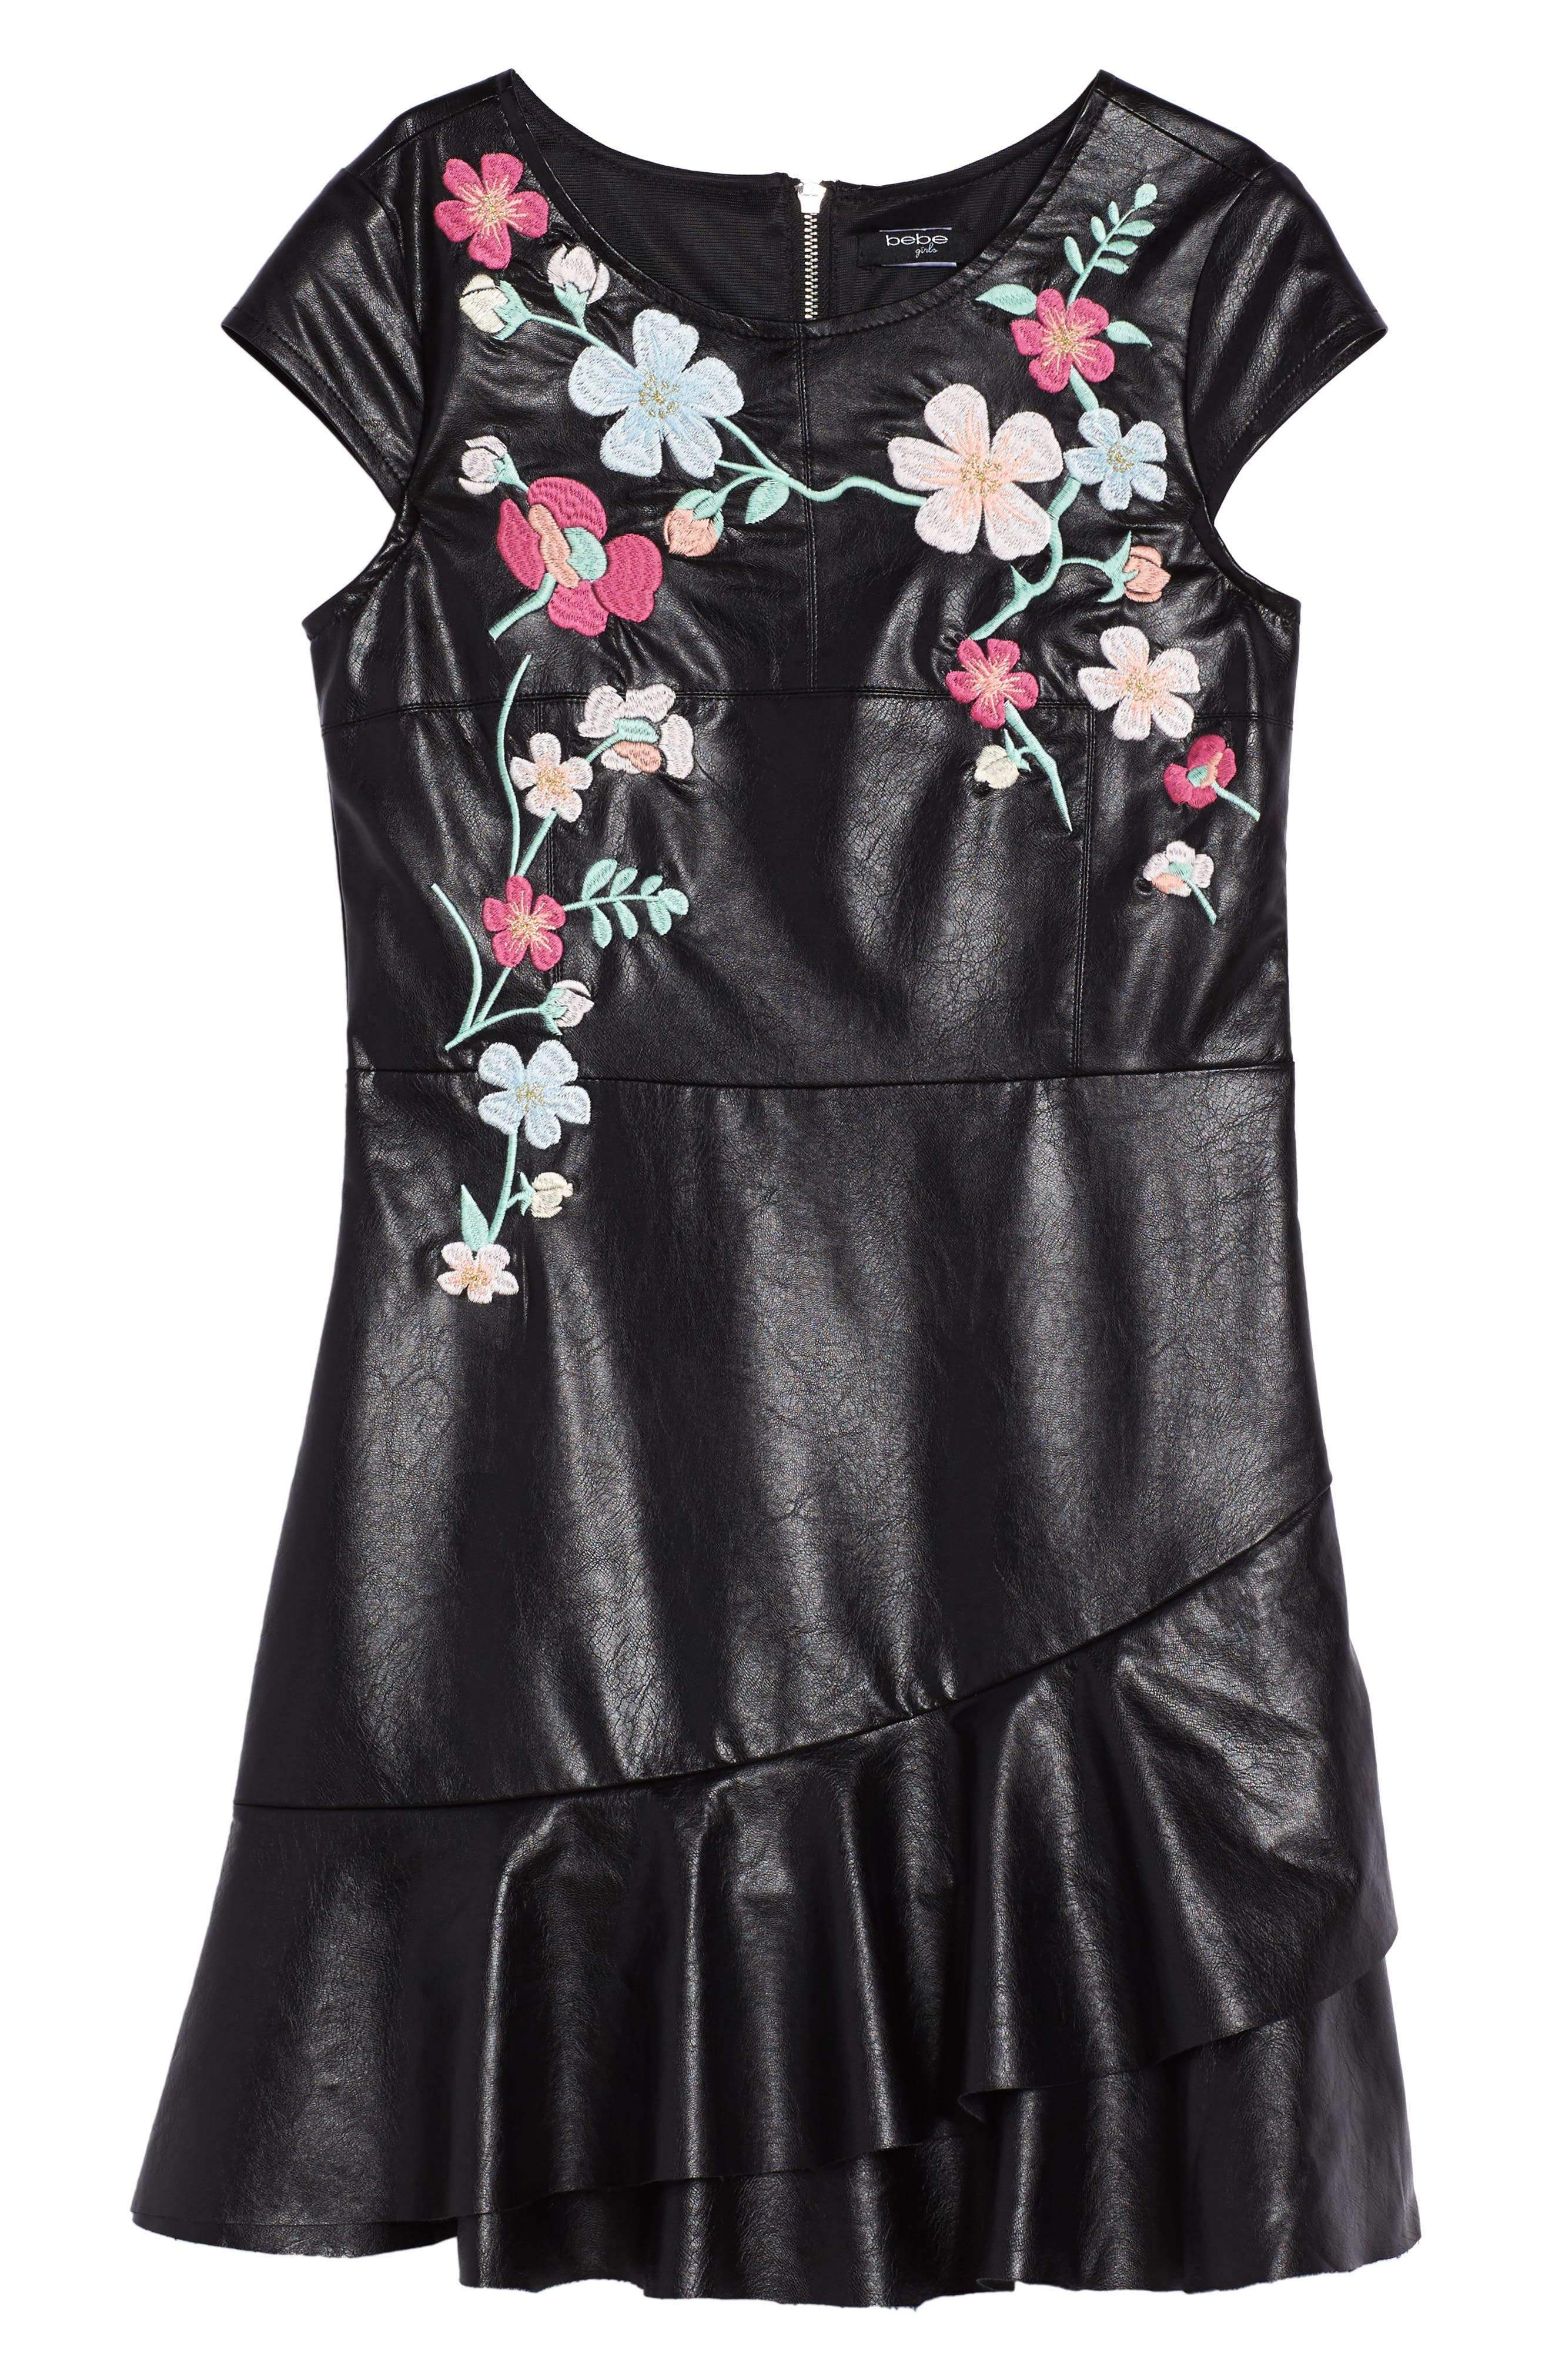 Alternate Image 1 Selected - bebe Embroidered Faux Leather Dress (Big Girls)